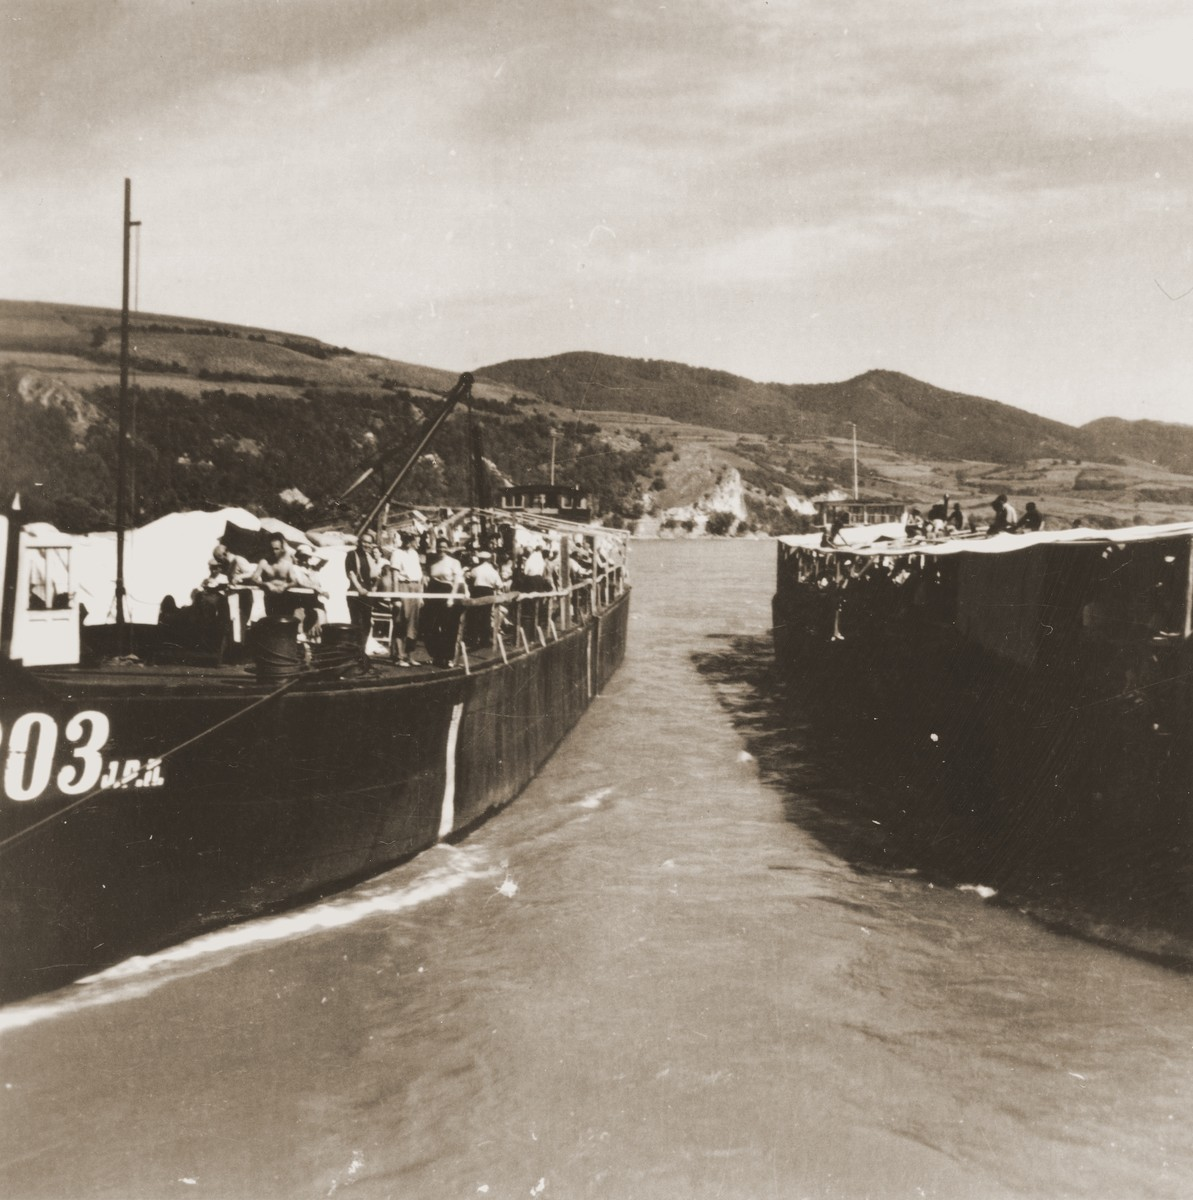 Jewish refugees from the Kladovo Transport are seen onboard two of the three vessels that are transporting them to Sabac.